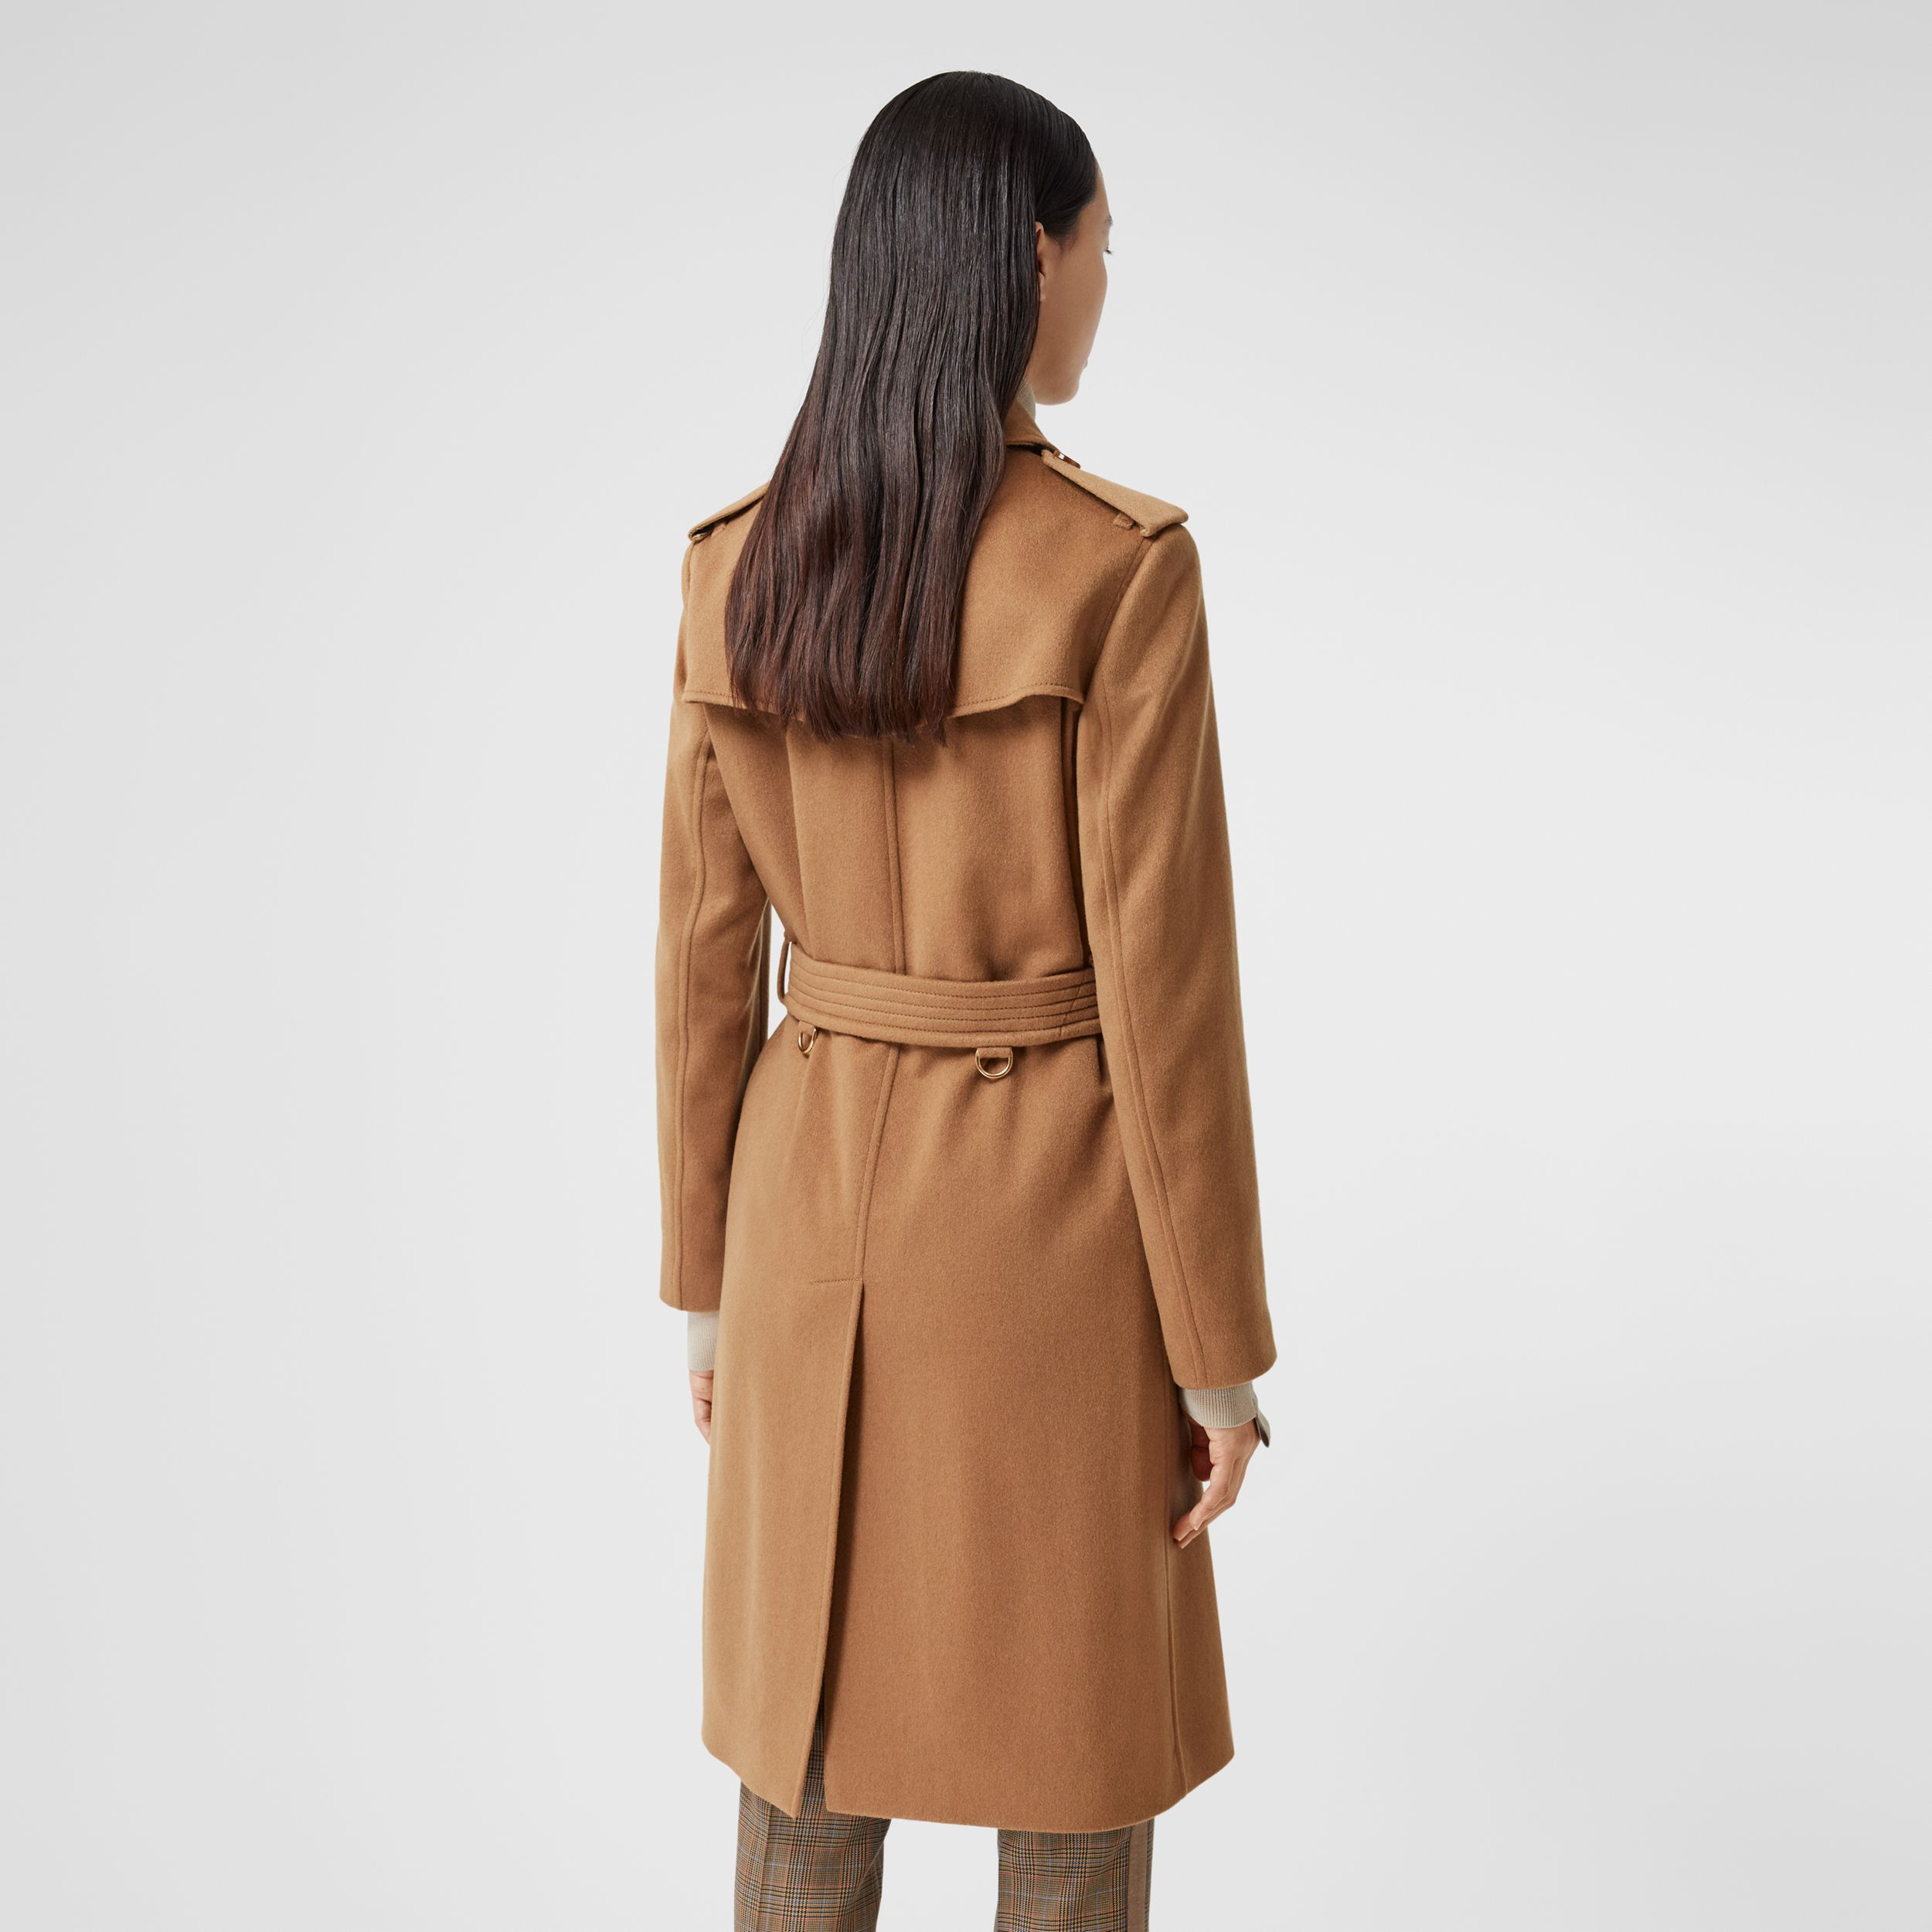 Cashmere Trench Coat in Bronze - Women | Burberry - 3